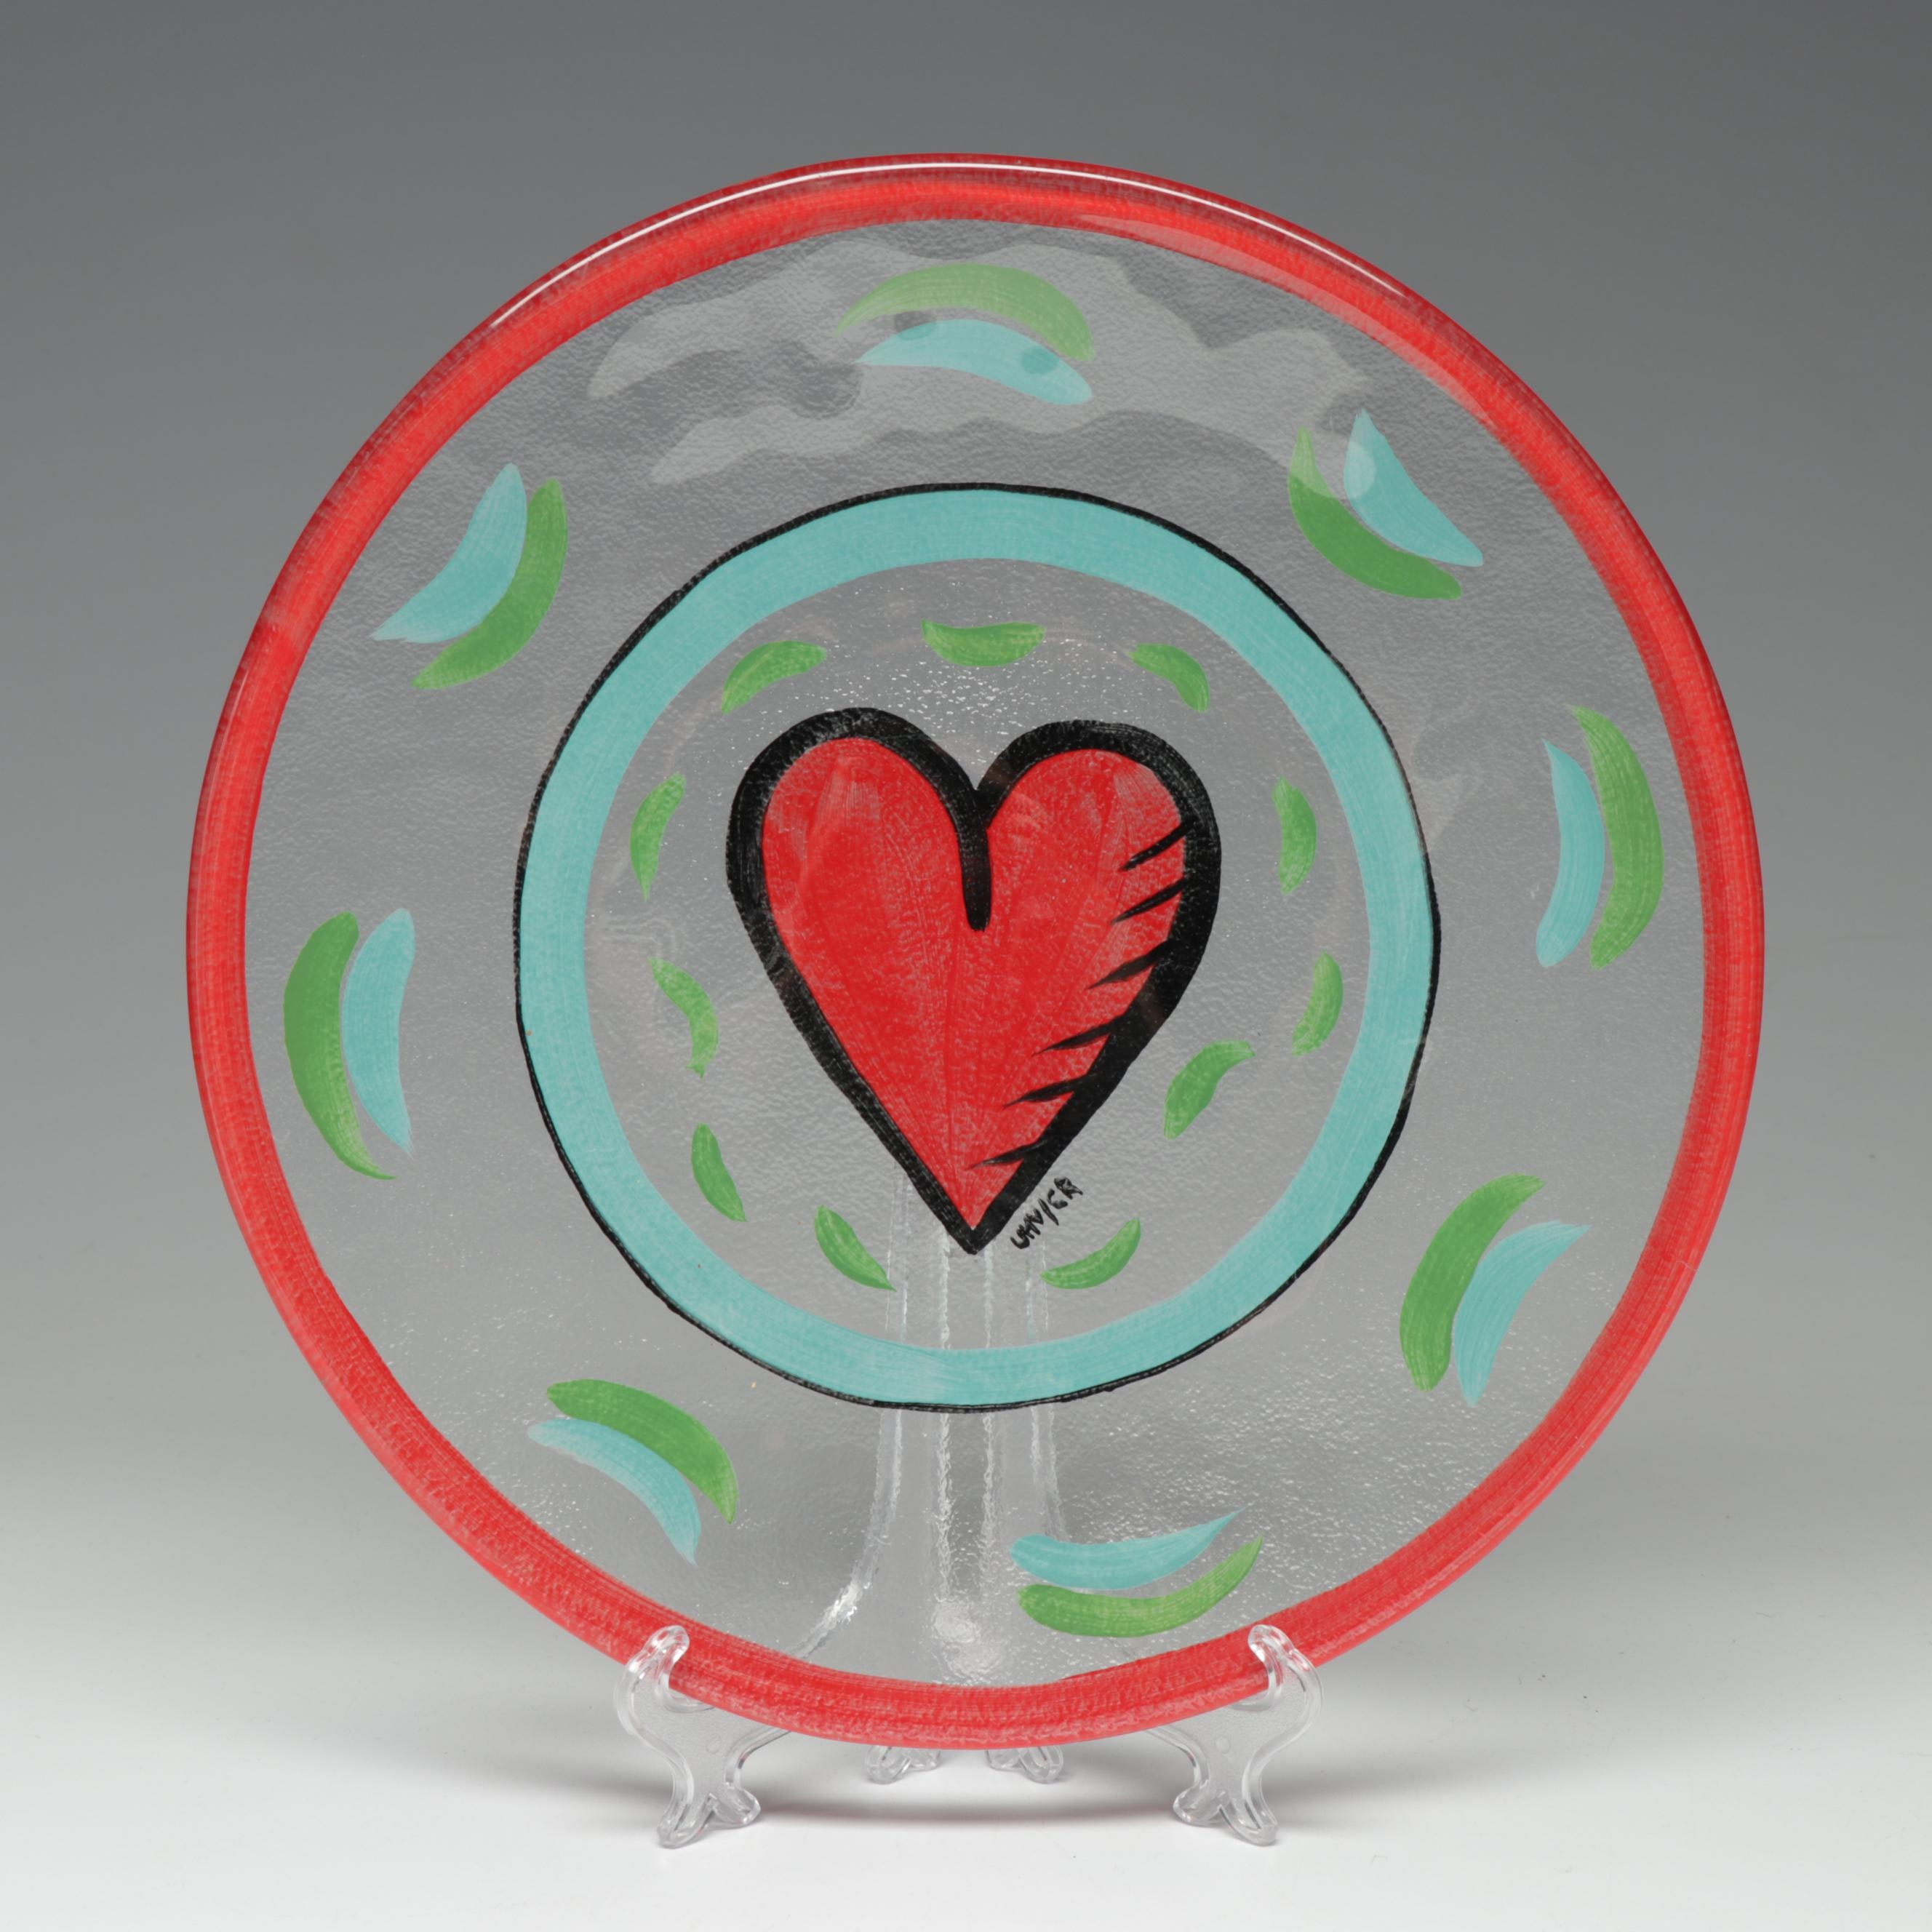 Kosta Boda Painted Heart Glass Plate by Ulrica Hydman-Vallien